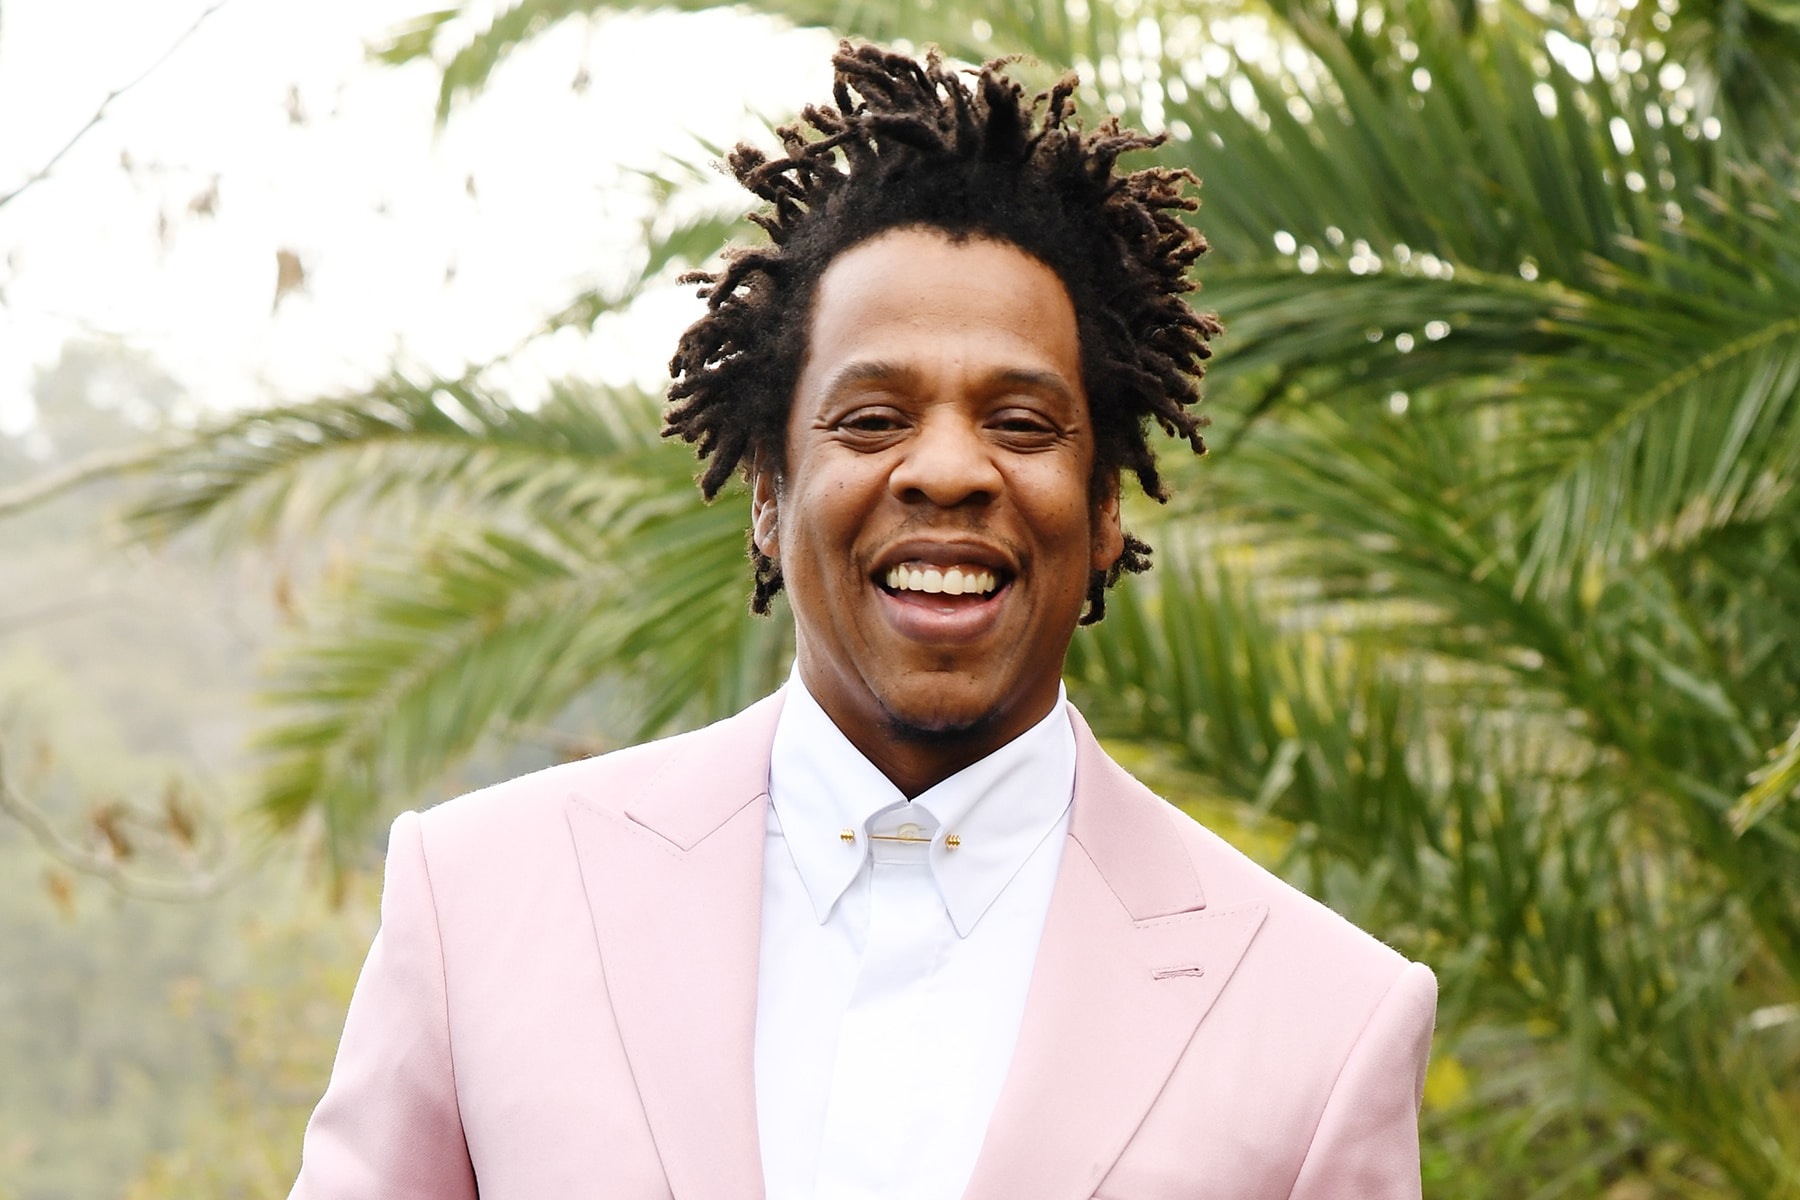 Cultivate Dispensary Las Vegas Jay-Z Just Announced That He's Launching a Weed Brand with Caliva.